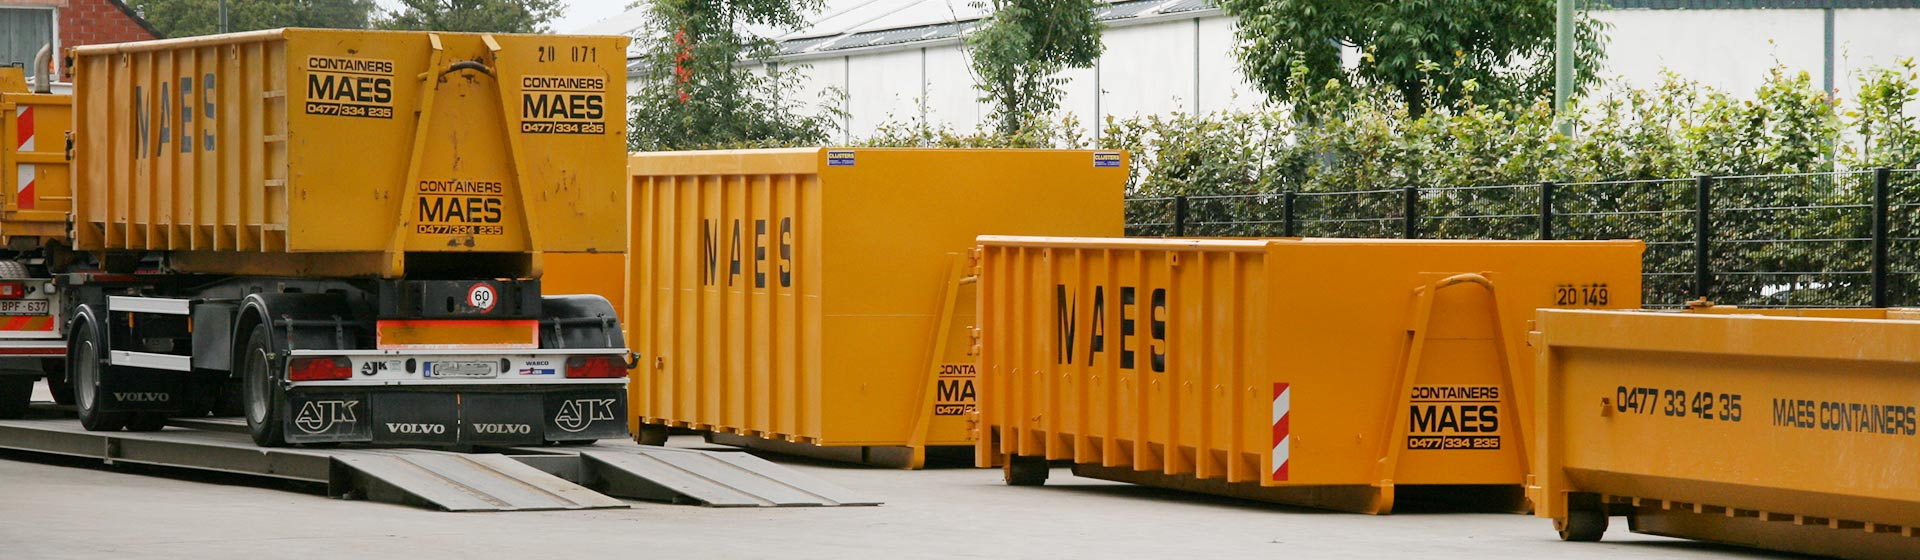 containers-maes2